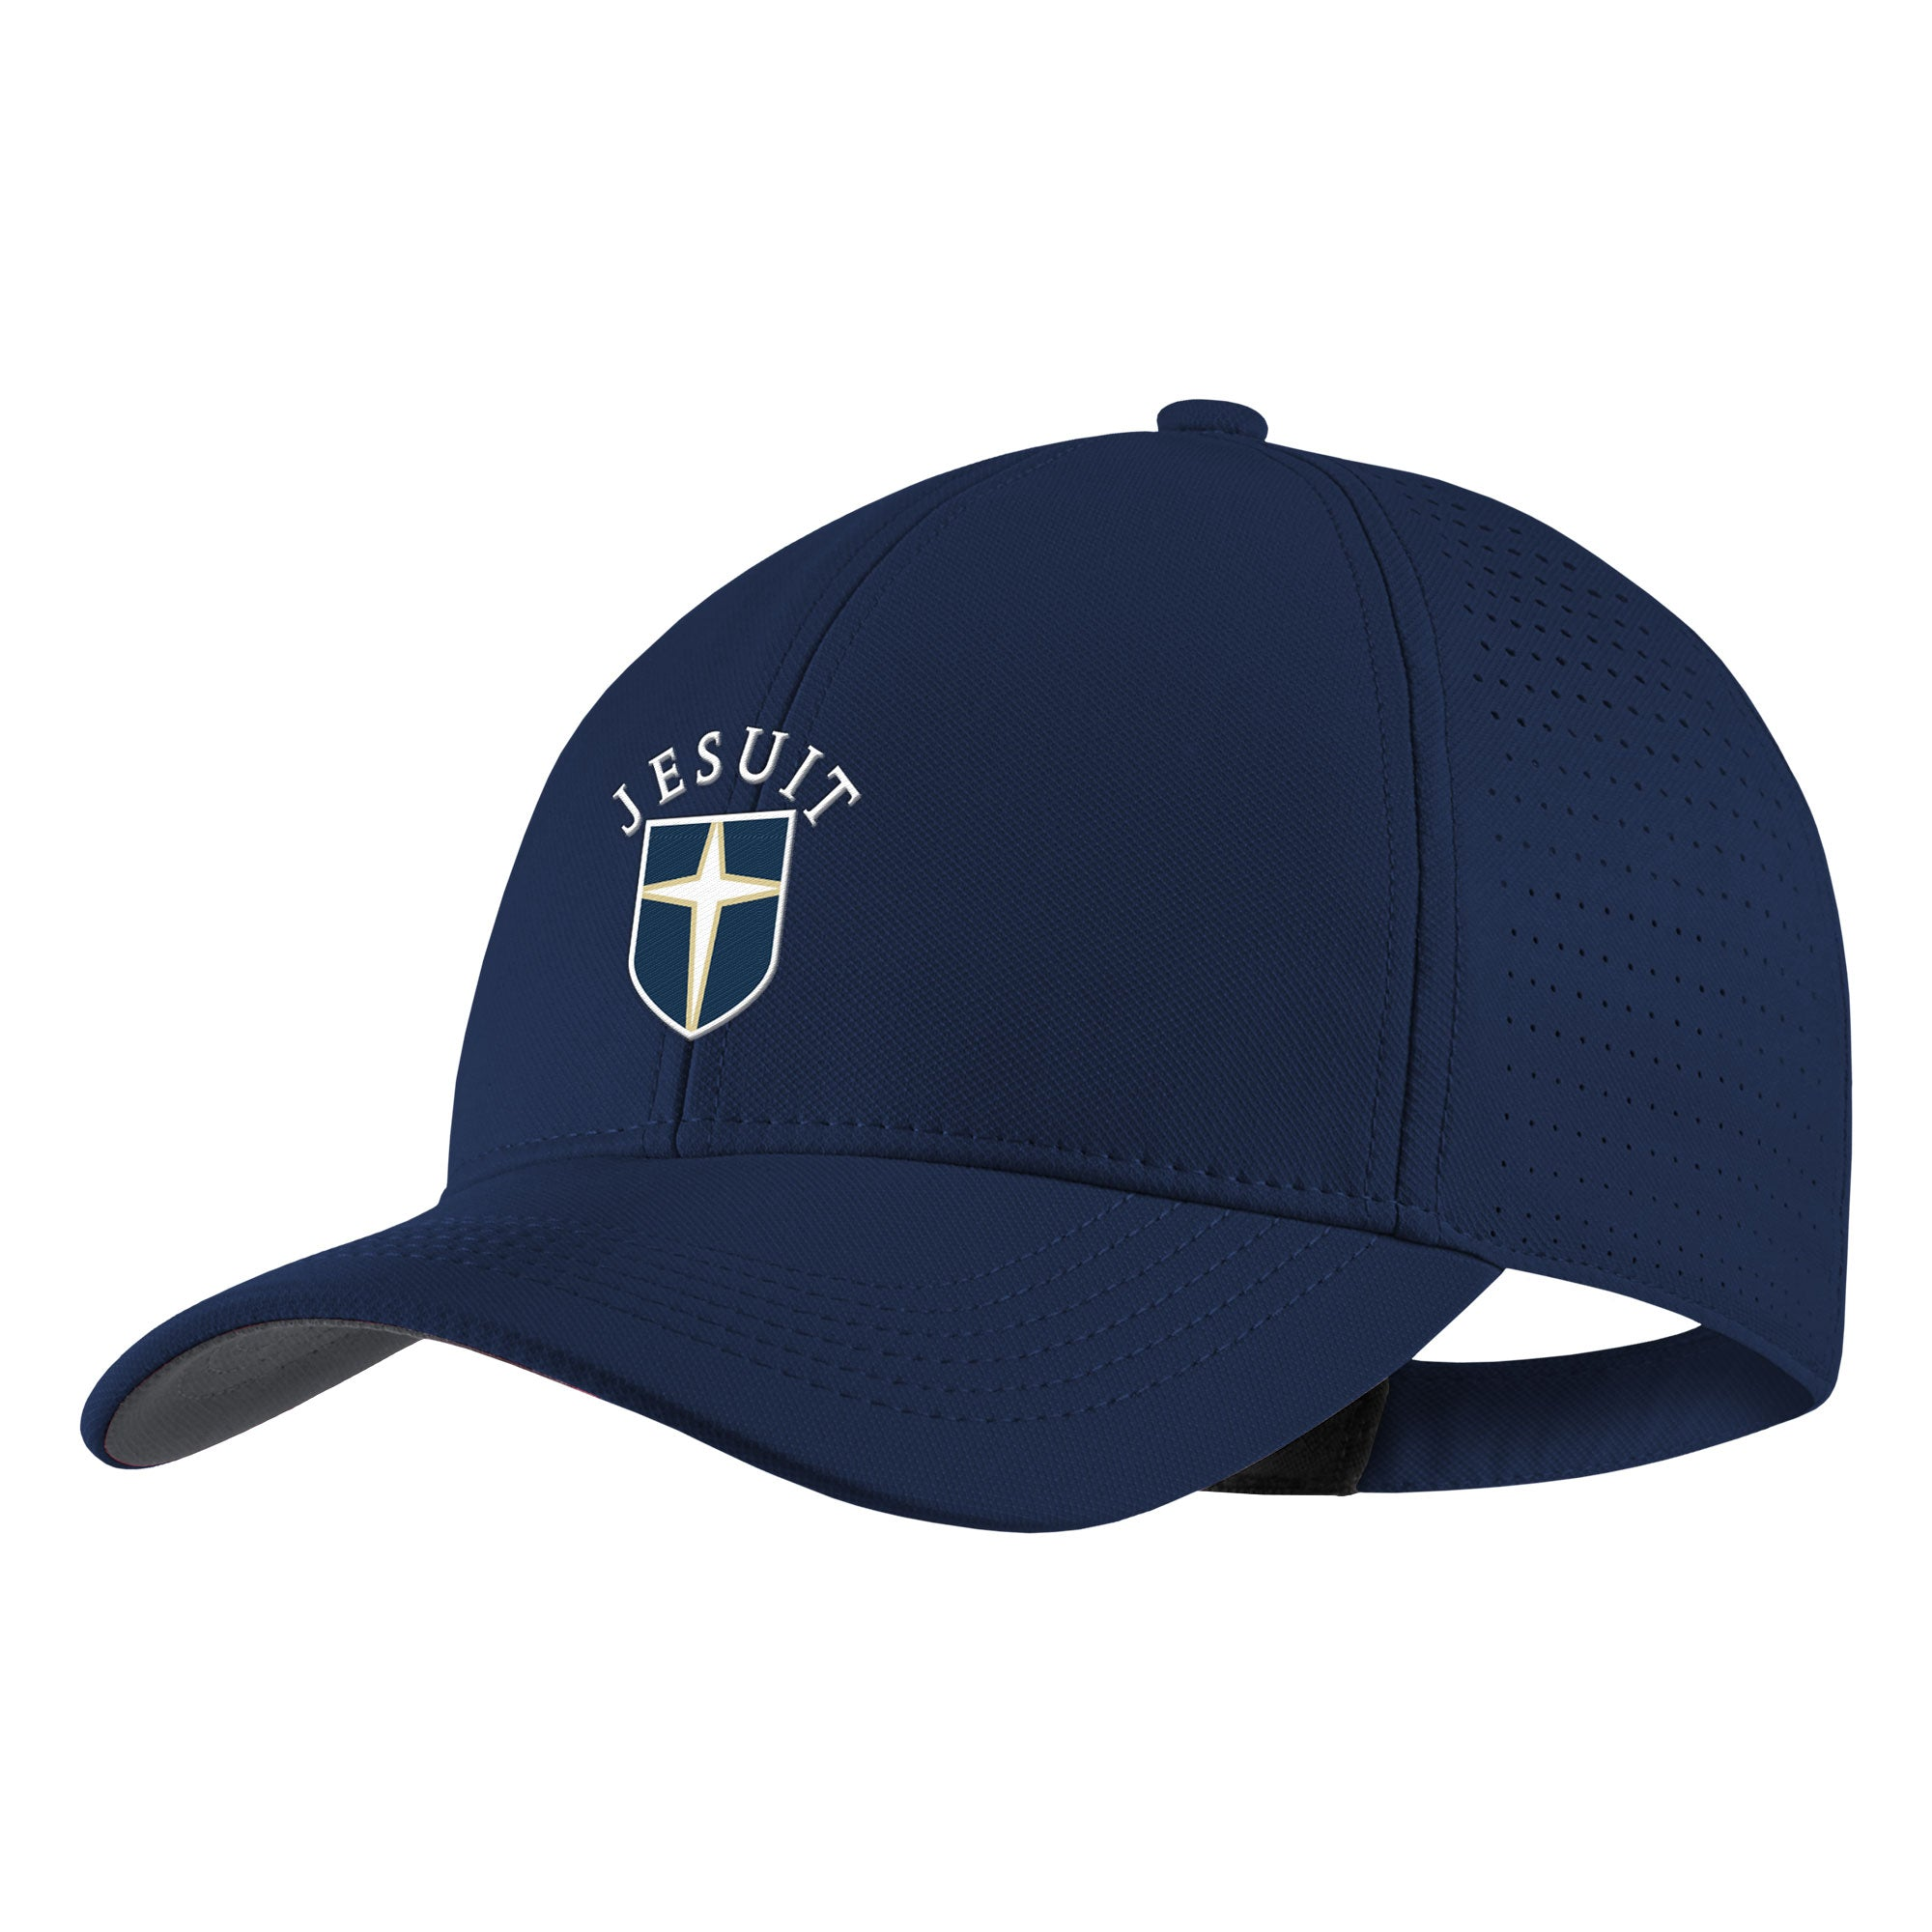 87a3491771d85 Nike Golf Legacy Perforated Hat – Jesuit Dallas Ranger Connection